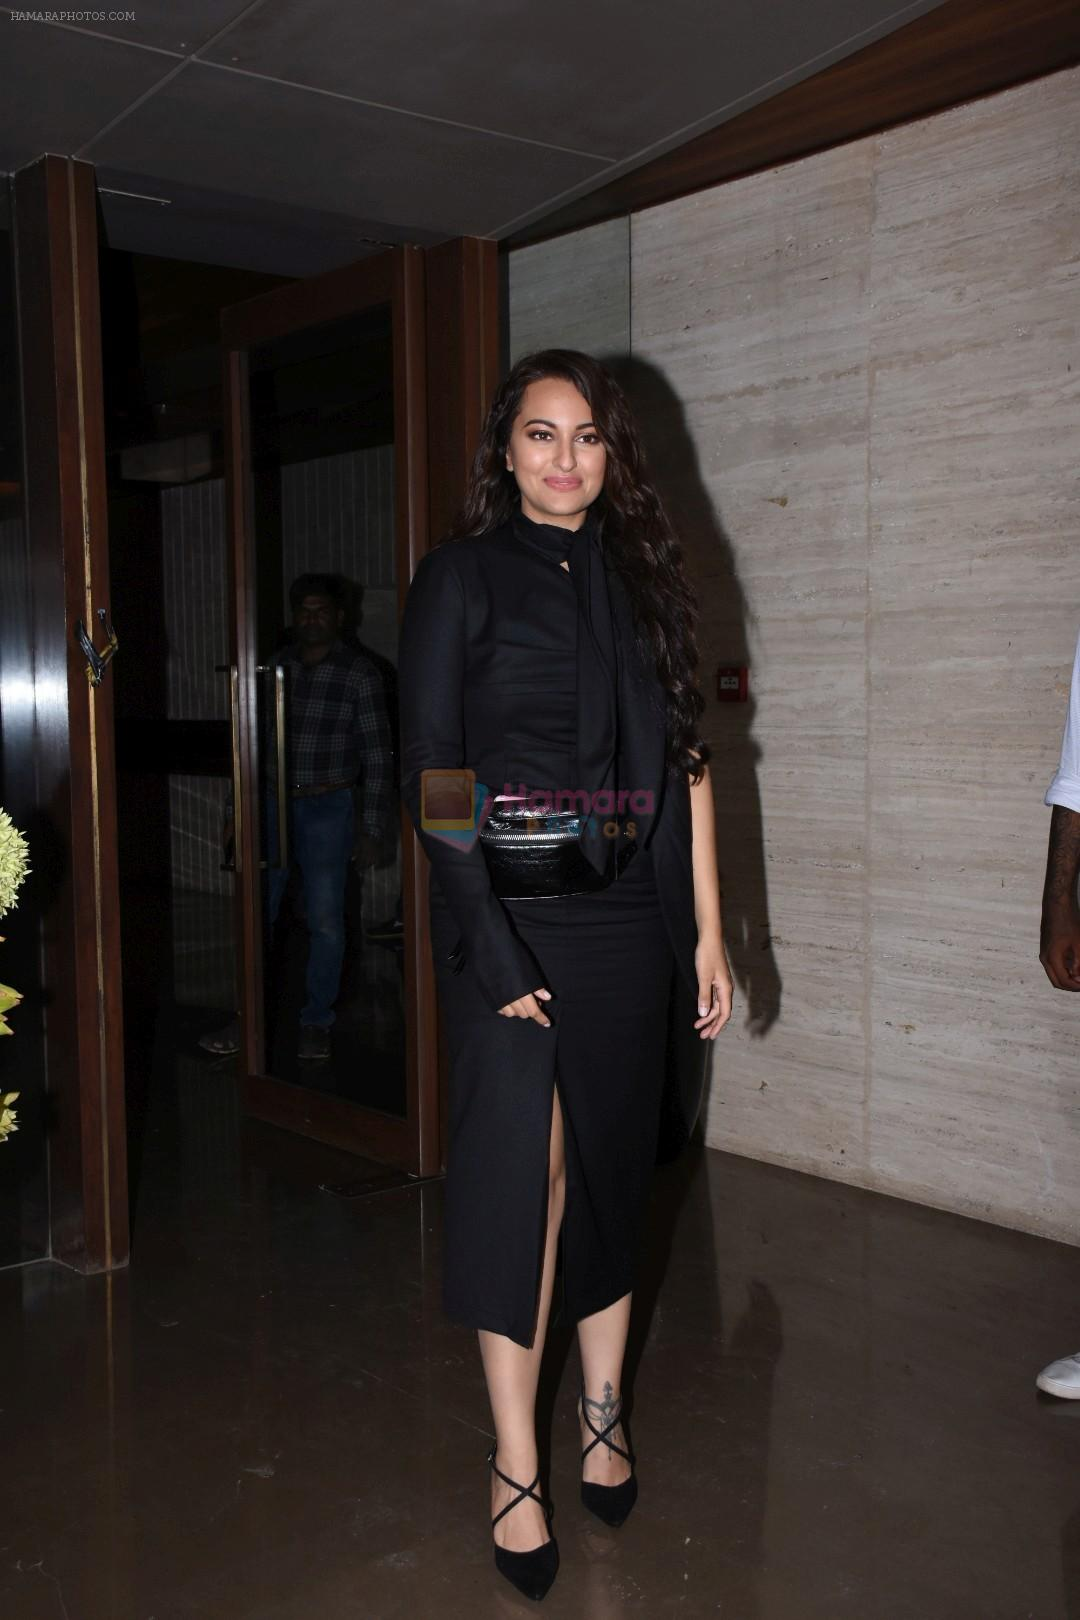 Sonakshi Sinha at Jacky Bhagnani's party at bandra on 5th Aug 2019